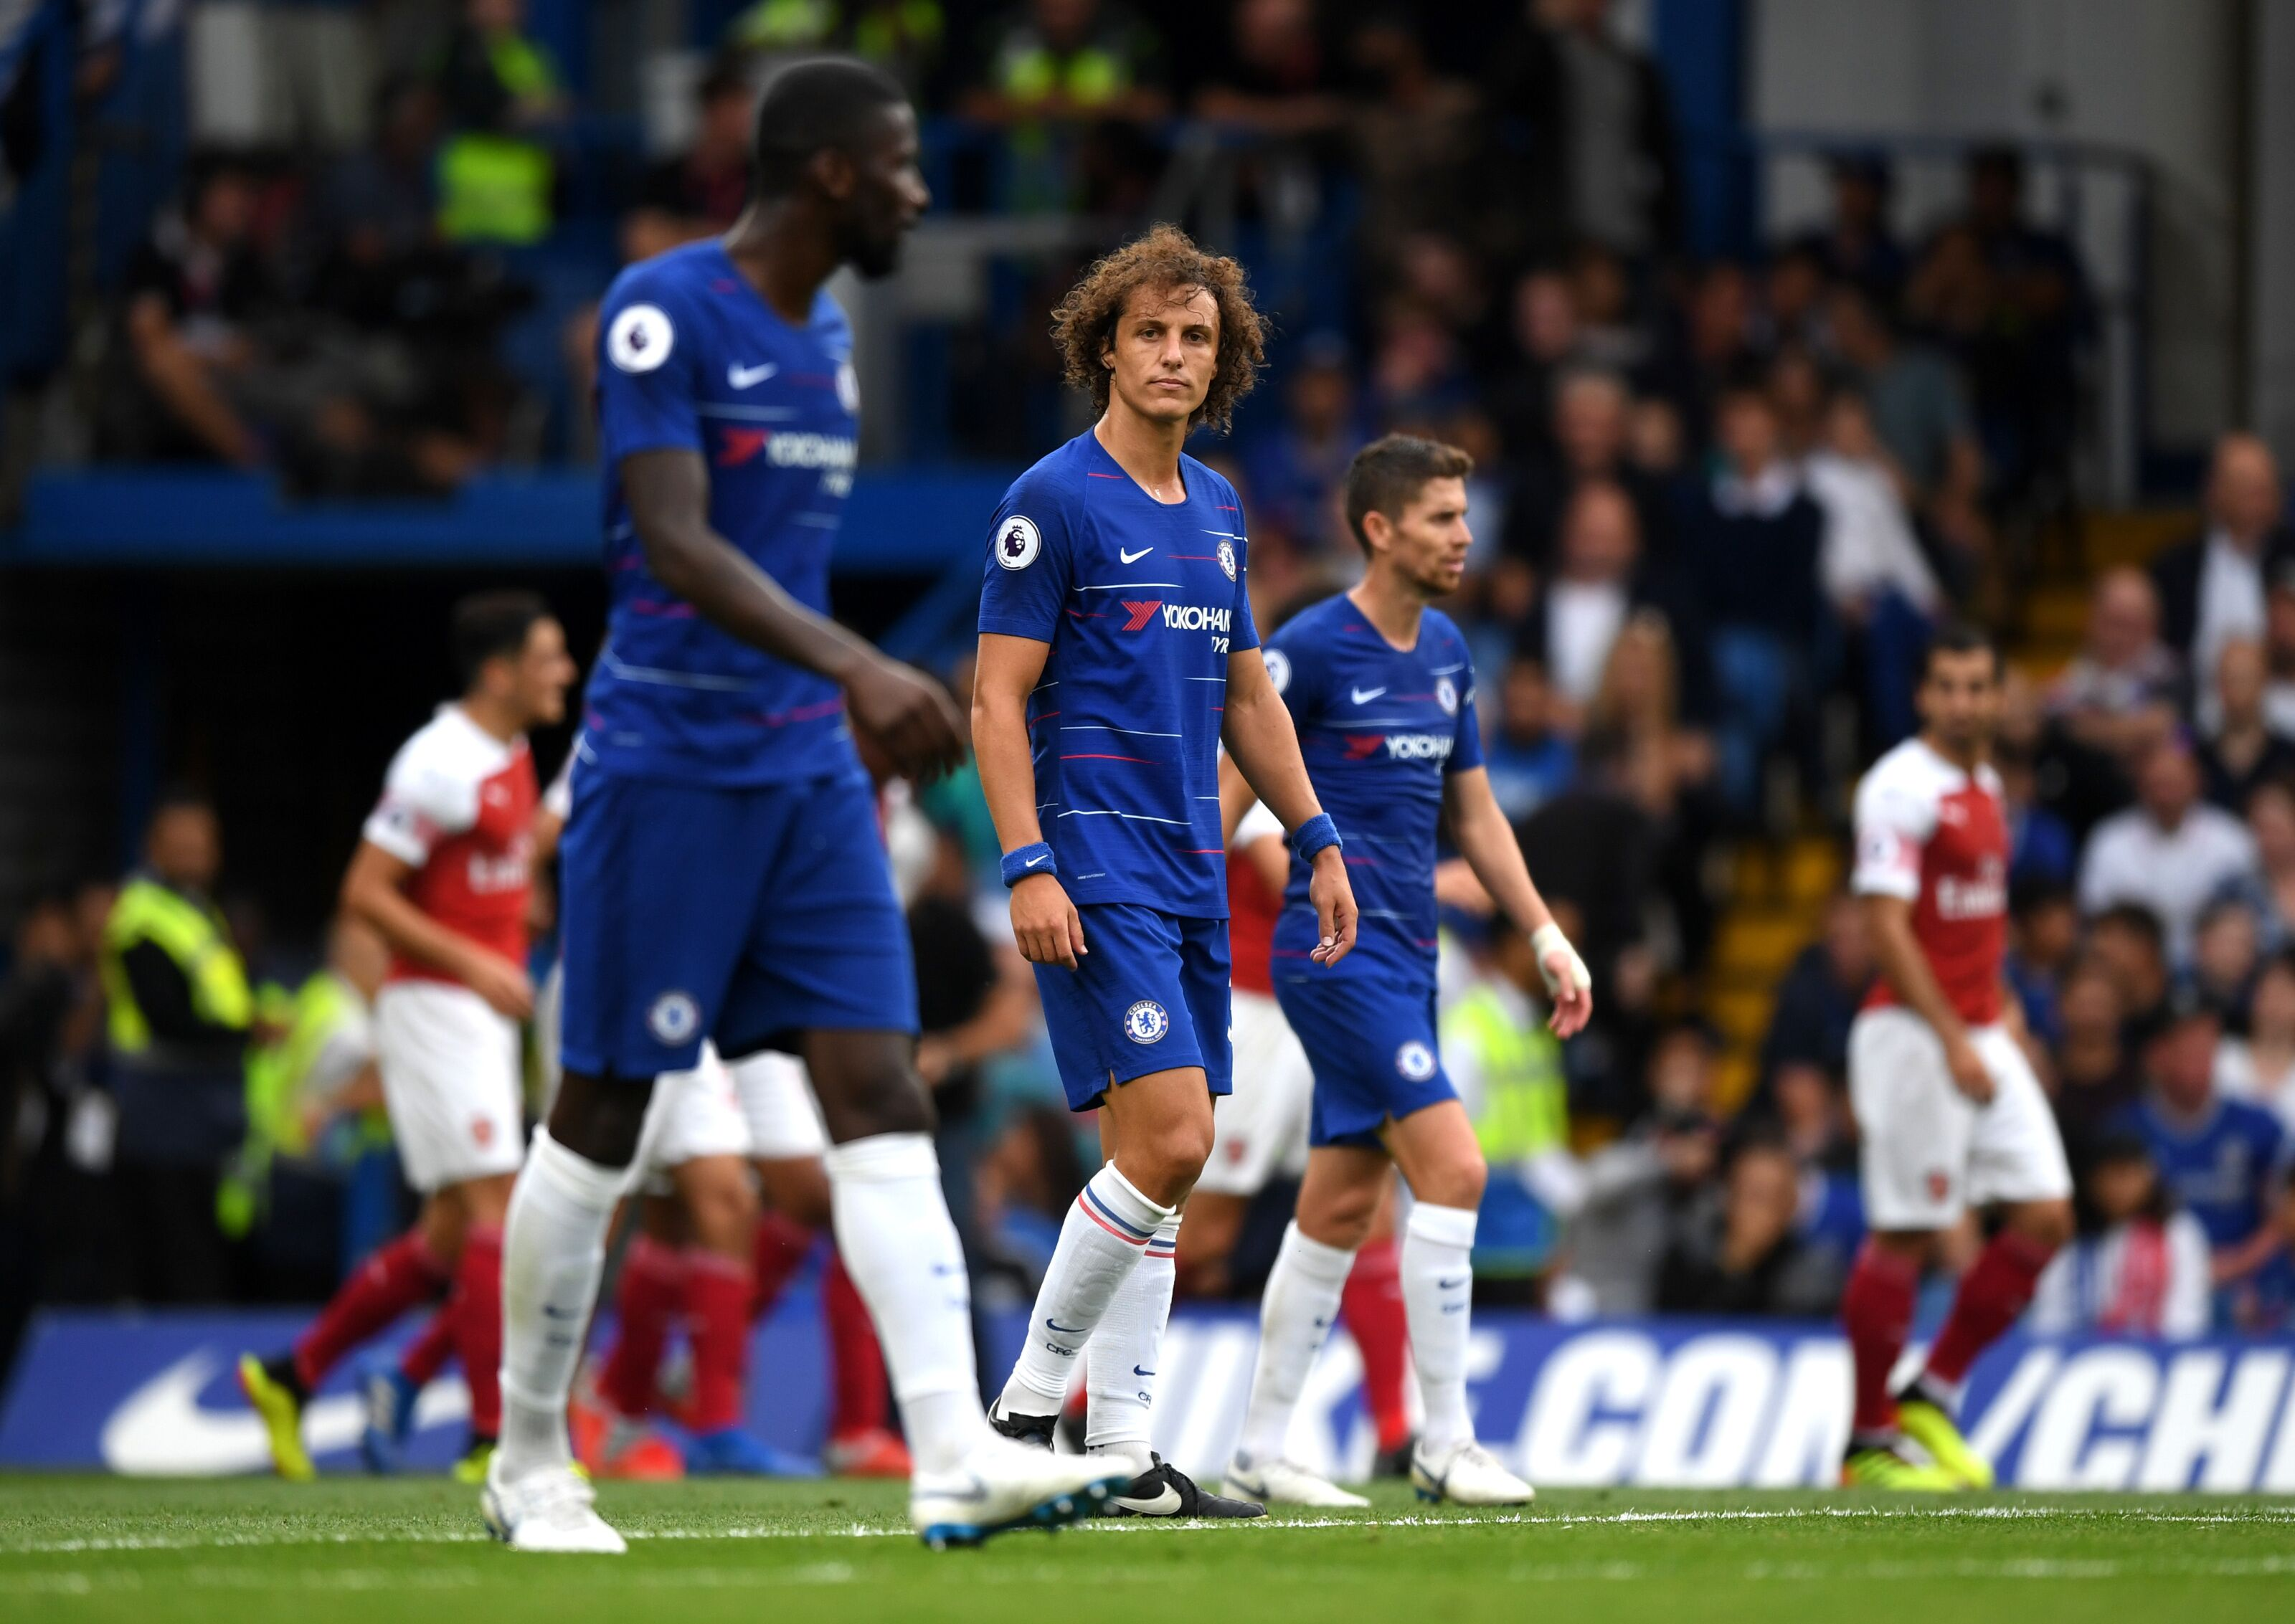 Ban or no ban, Chelsea should let all but two contracts expire this summer